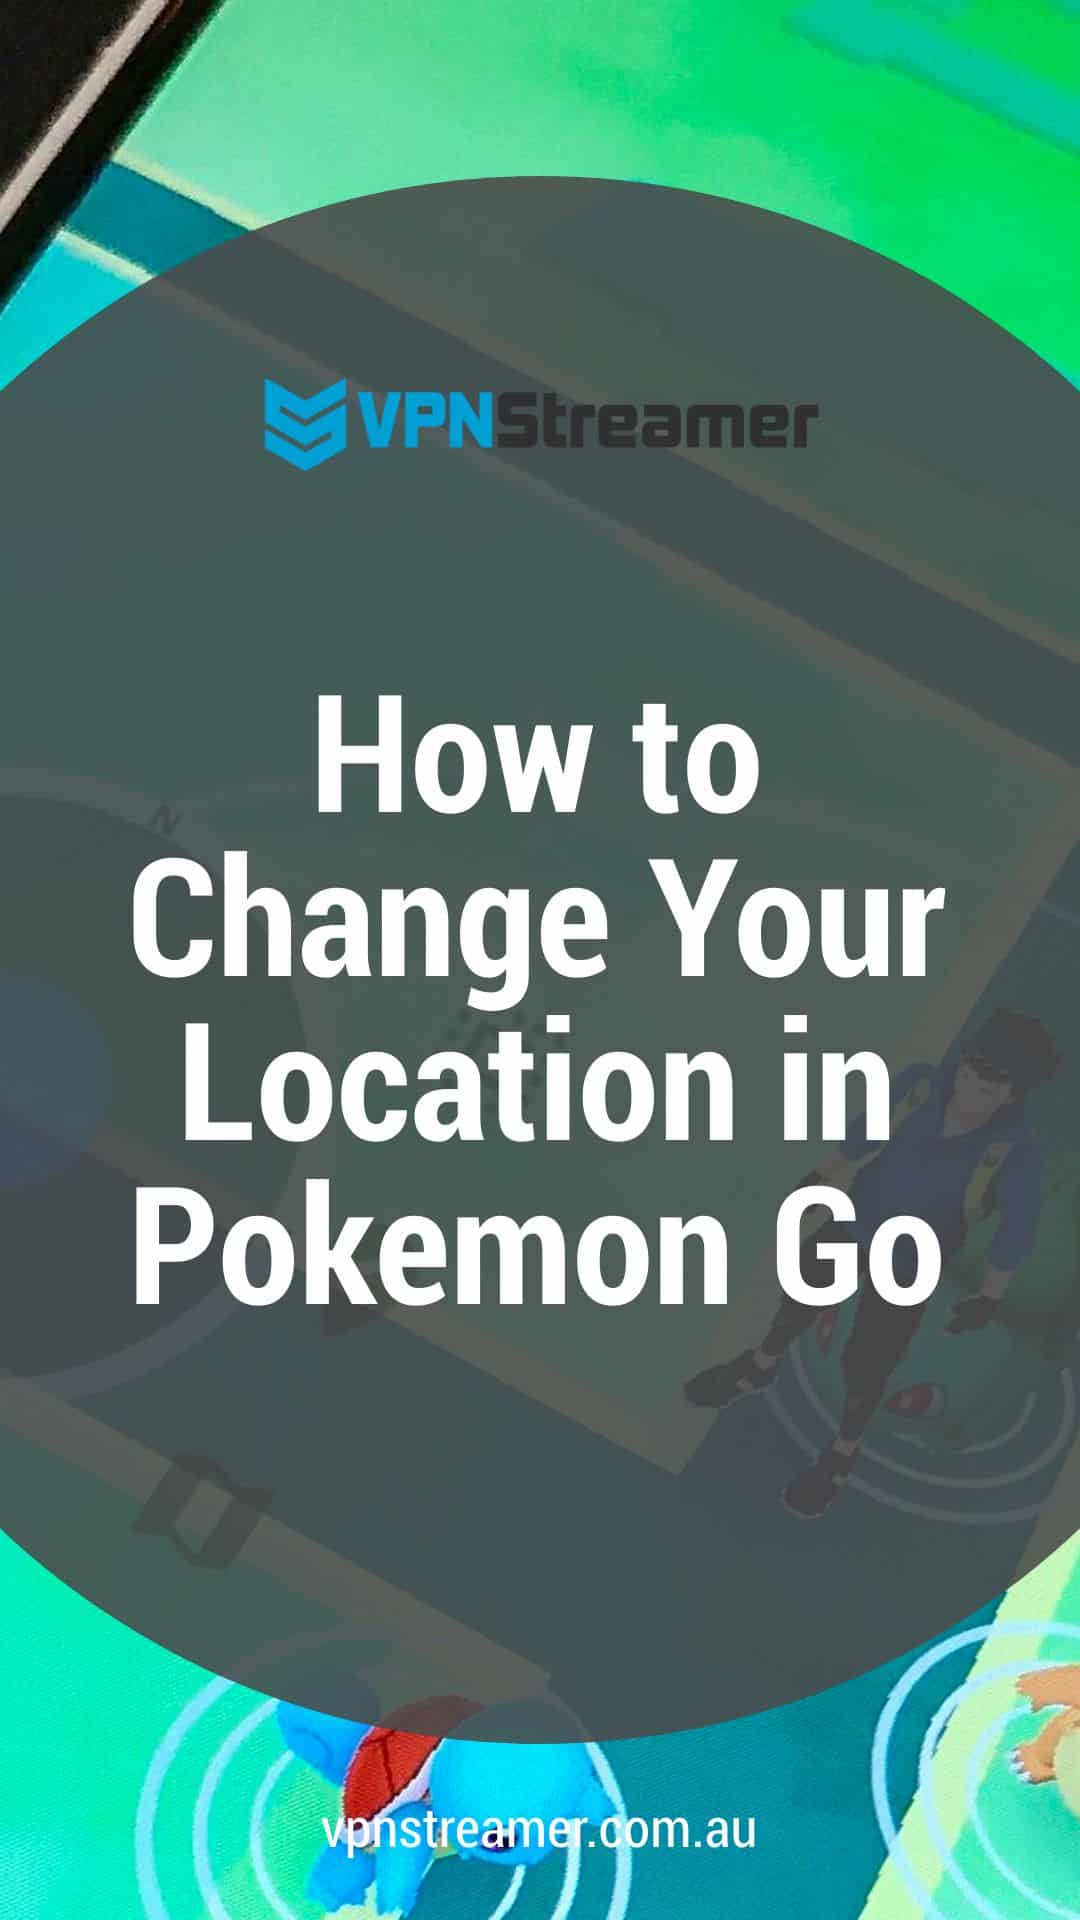 How to Change Your Location in Pokemon Go